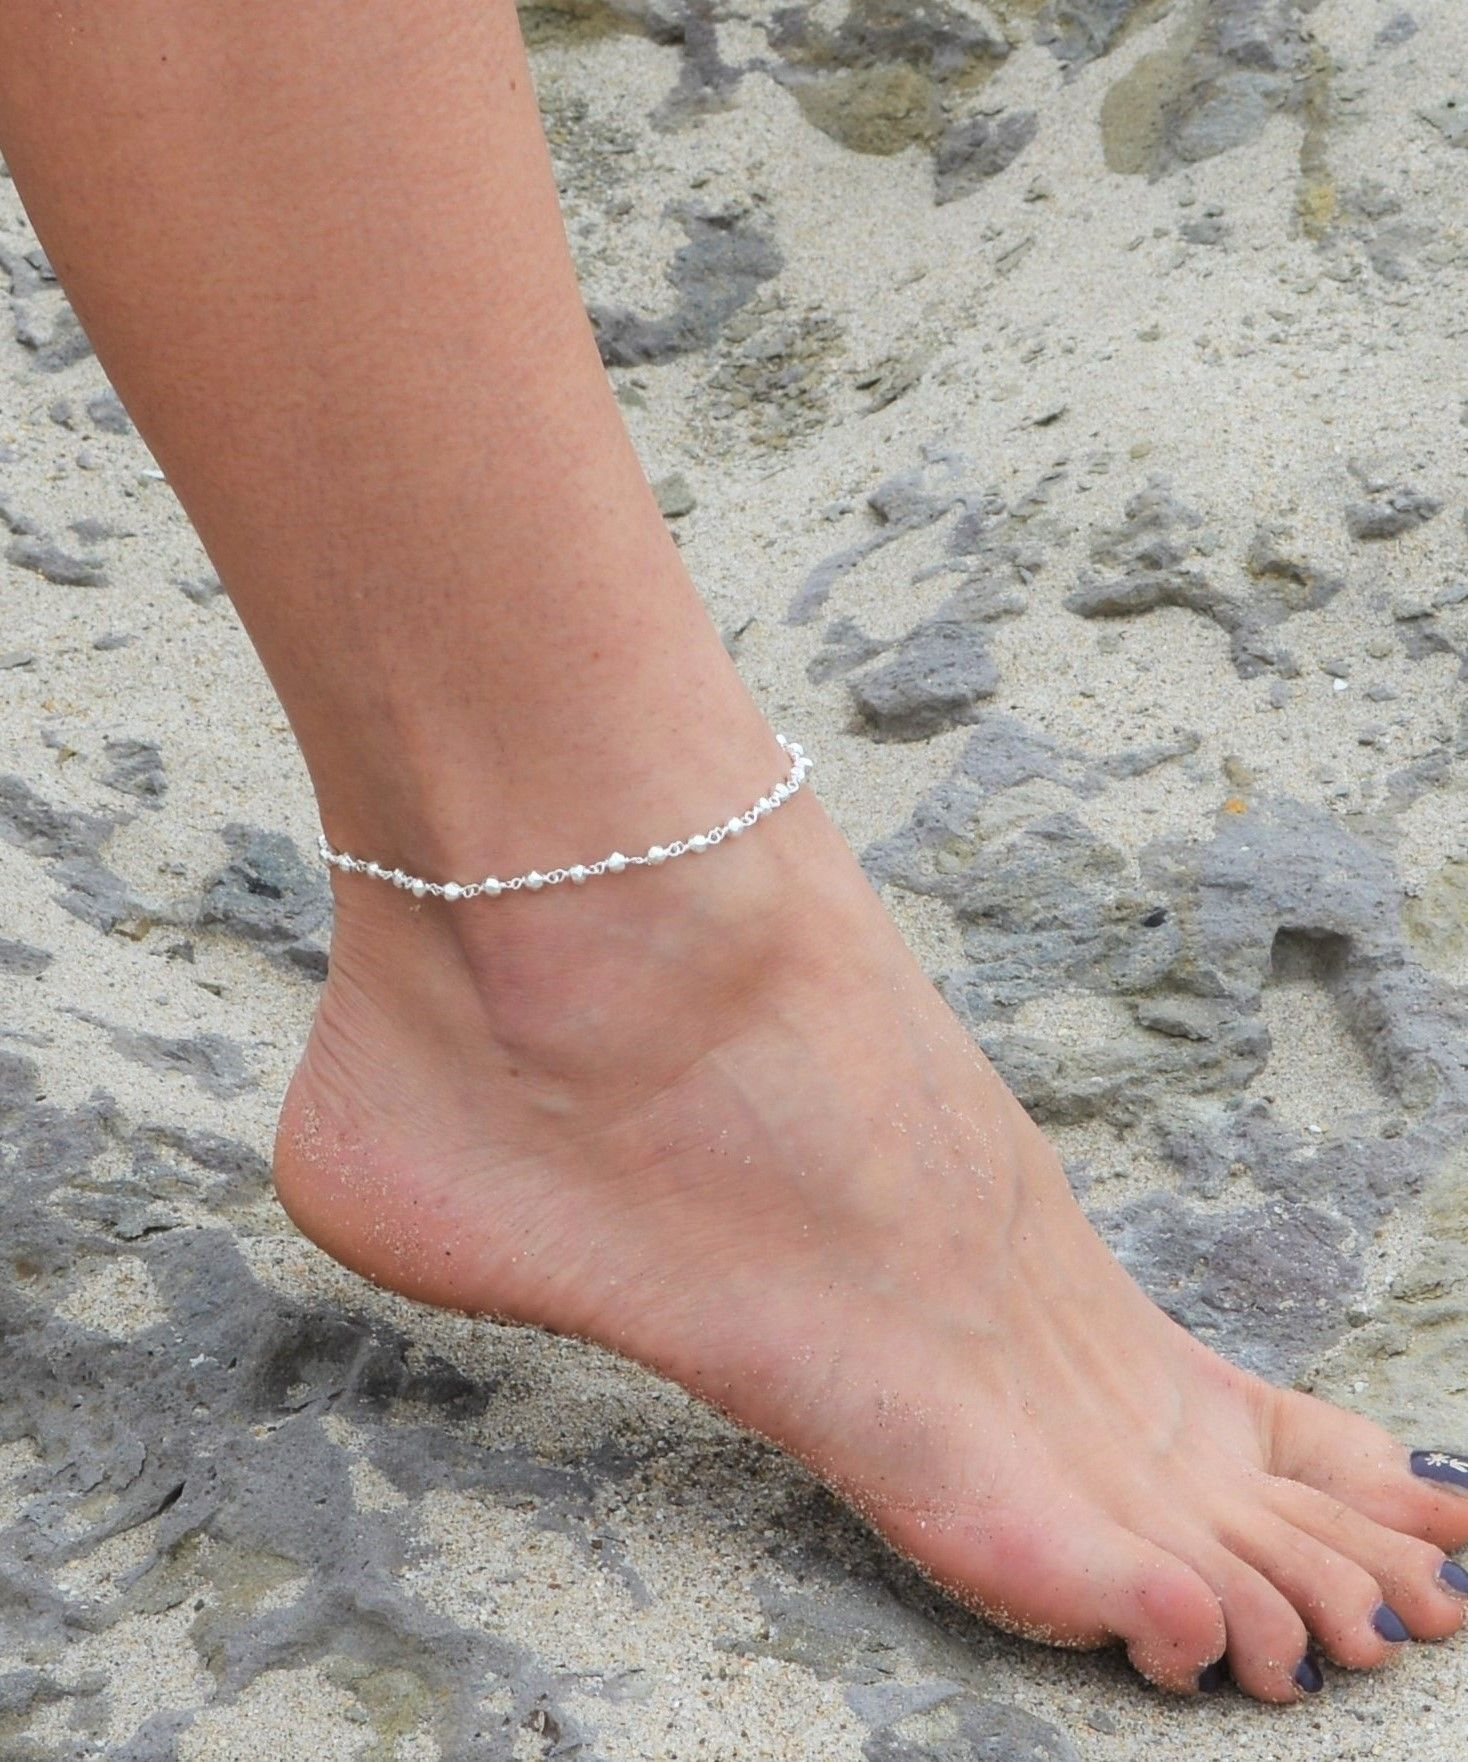 extension jewelry cut pin anklet or pinterest her for diamond mm bracelets anklets website cuts and with hearts